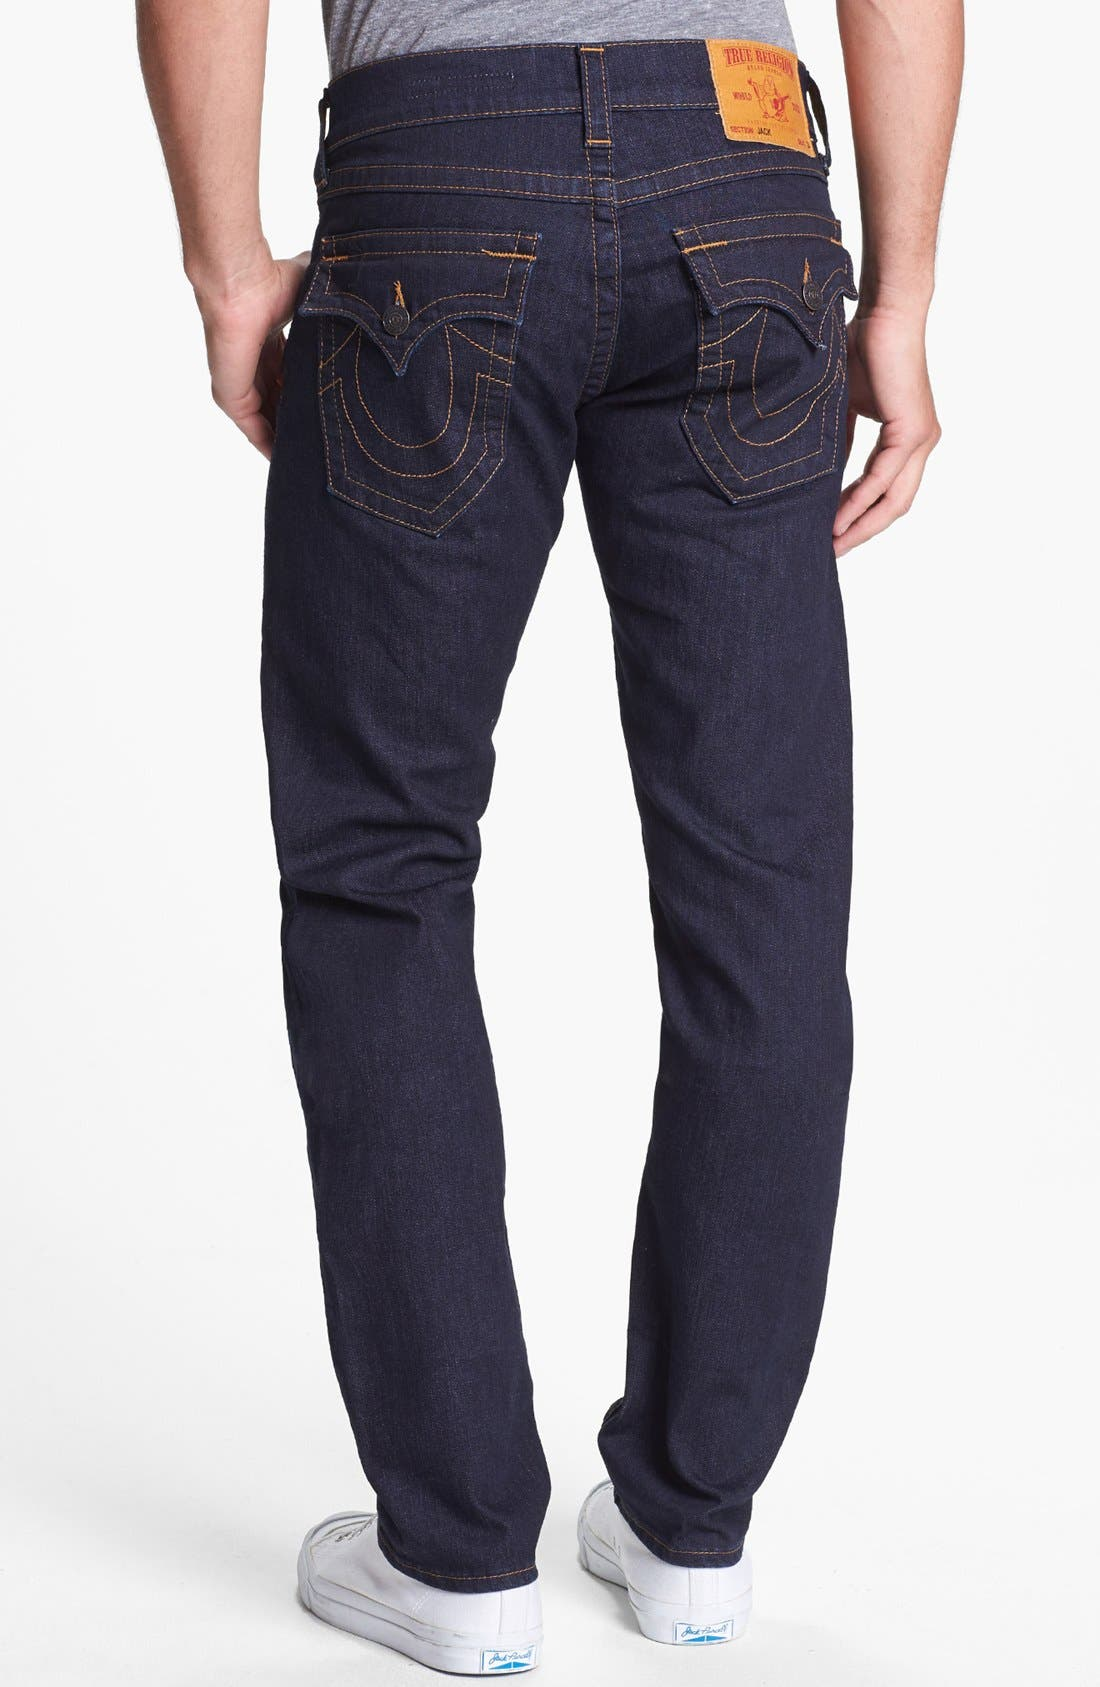 Alternate Image 1 Selected - True Religion Brand Jeans 'Jack' Slim Fit Jeans (Midnight Blue)